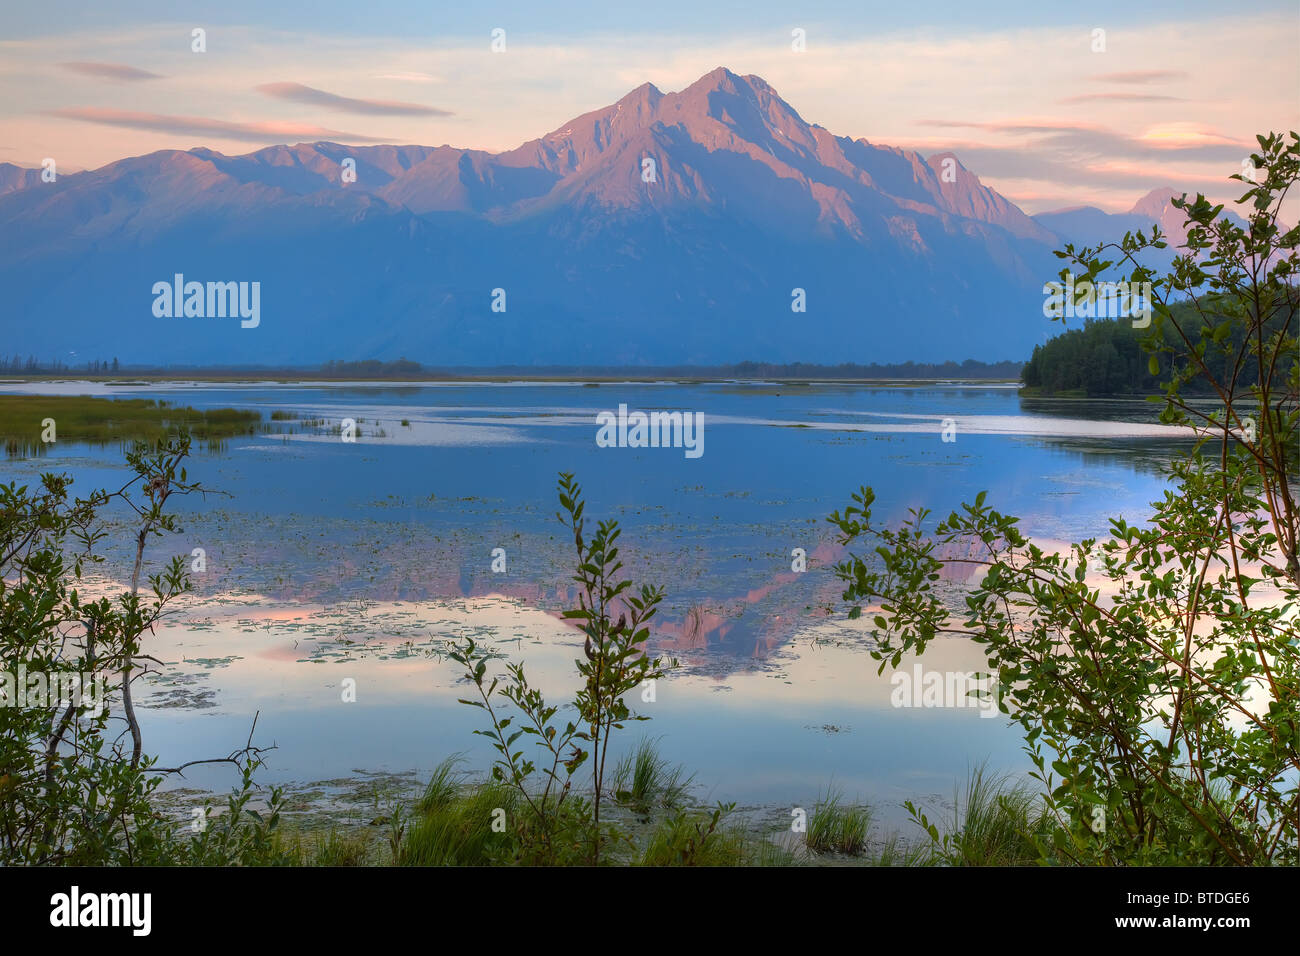 Sunrise on Pioneer Peak with Jim Lake in the foreground, Southcentral Alaska, HDR image - Stock Image